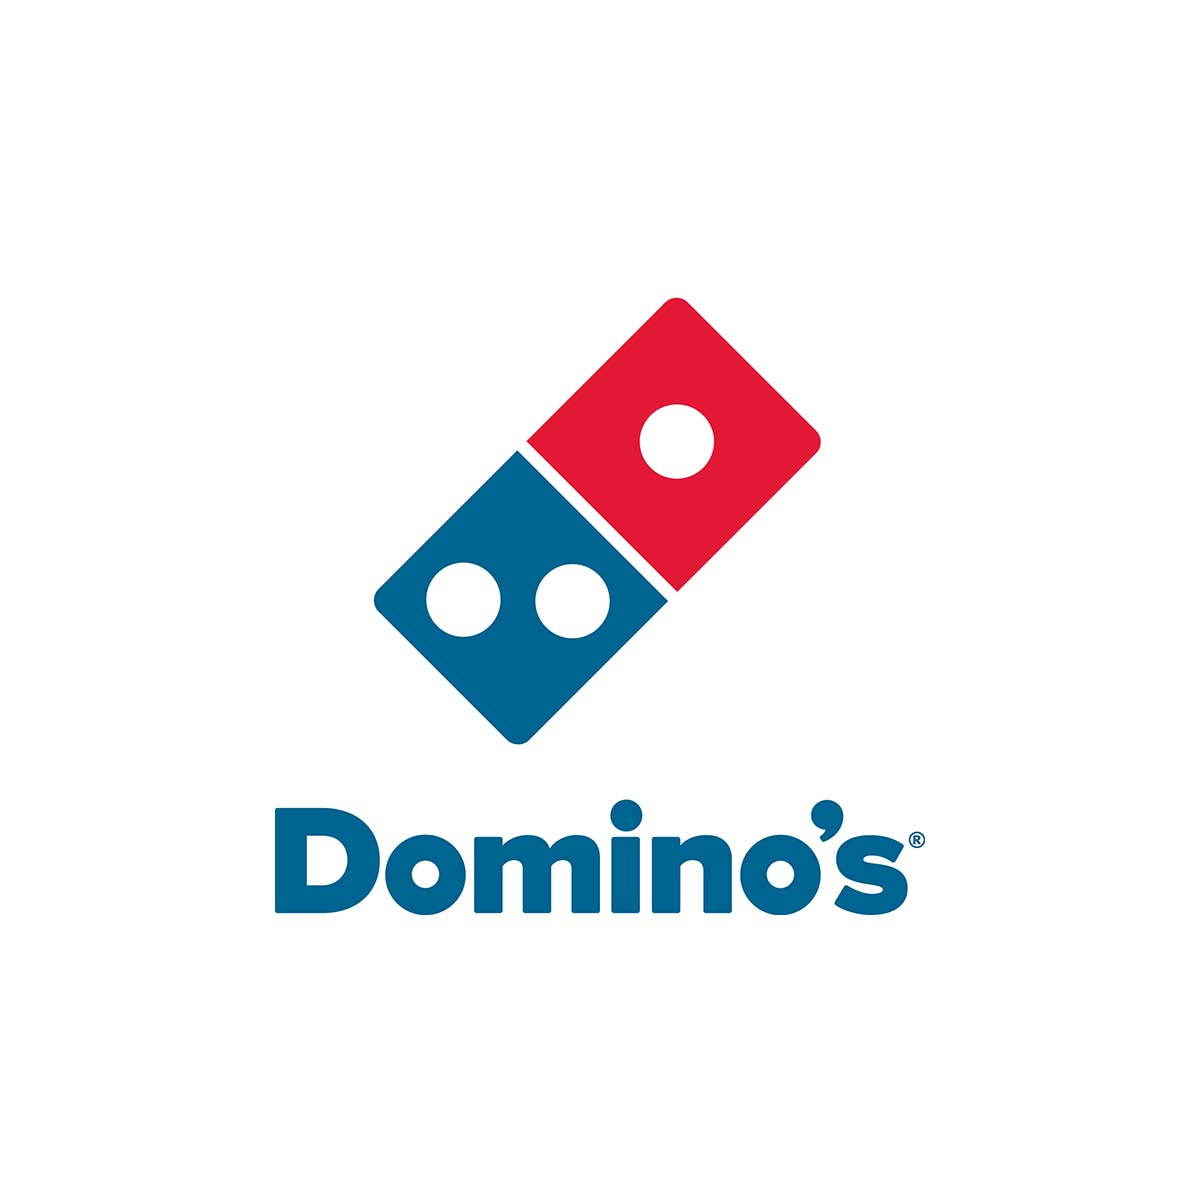 [Dominos]Medium 2-Topping Pizza for 5.99, Large for 7.99(May 22nd- 28th)